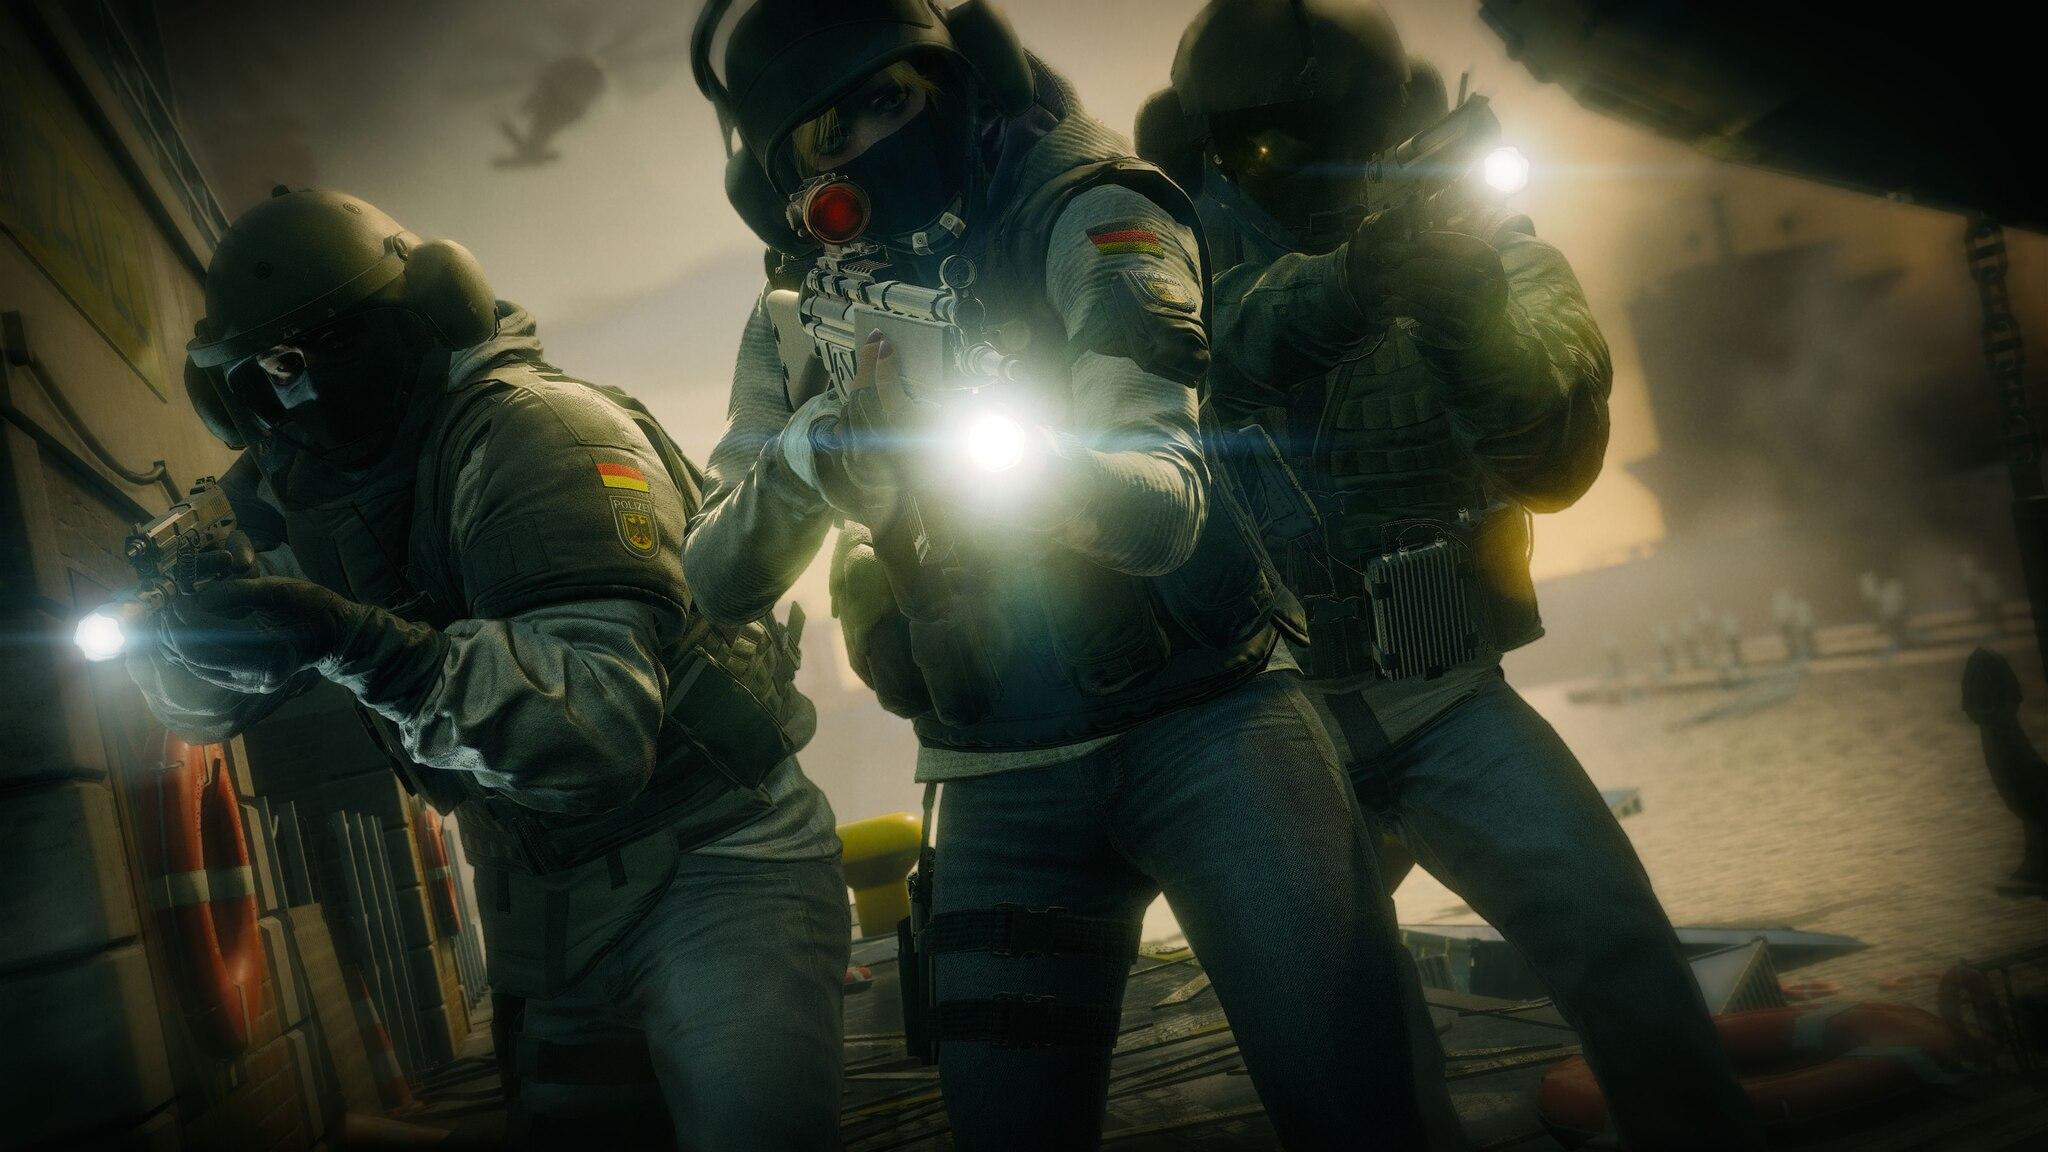 Rainbow Six Siege Wallpaper Download Free Beautiful: 2048x1152 4k Tom Clancys Rainbow Six Siege 2048x1152